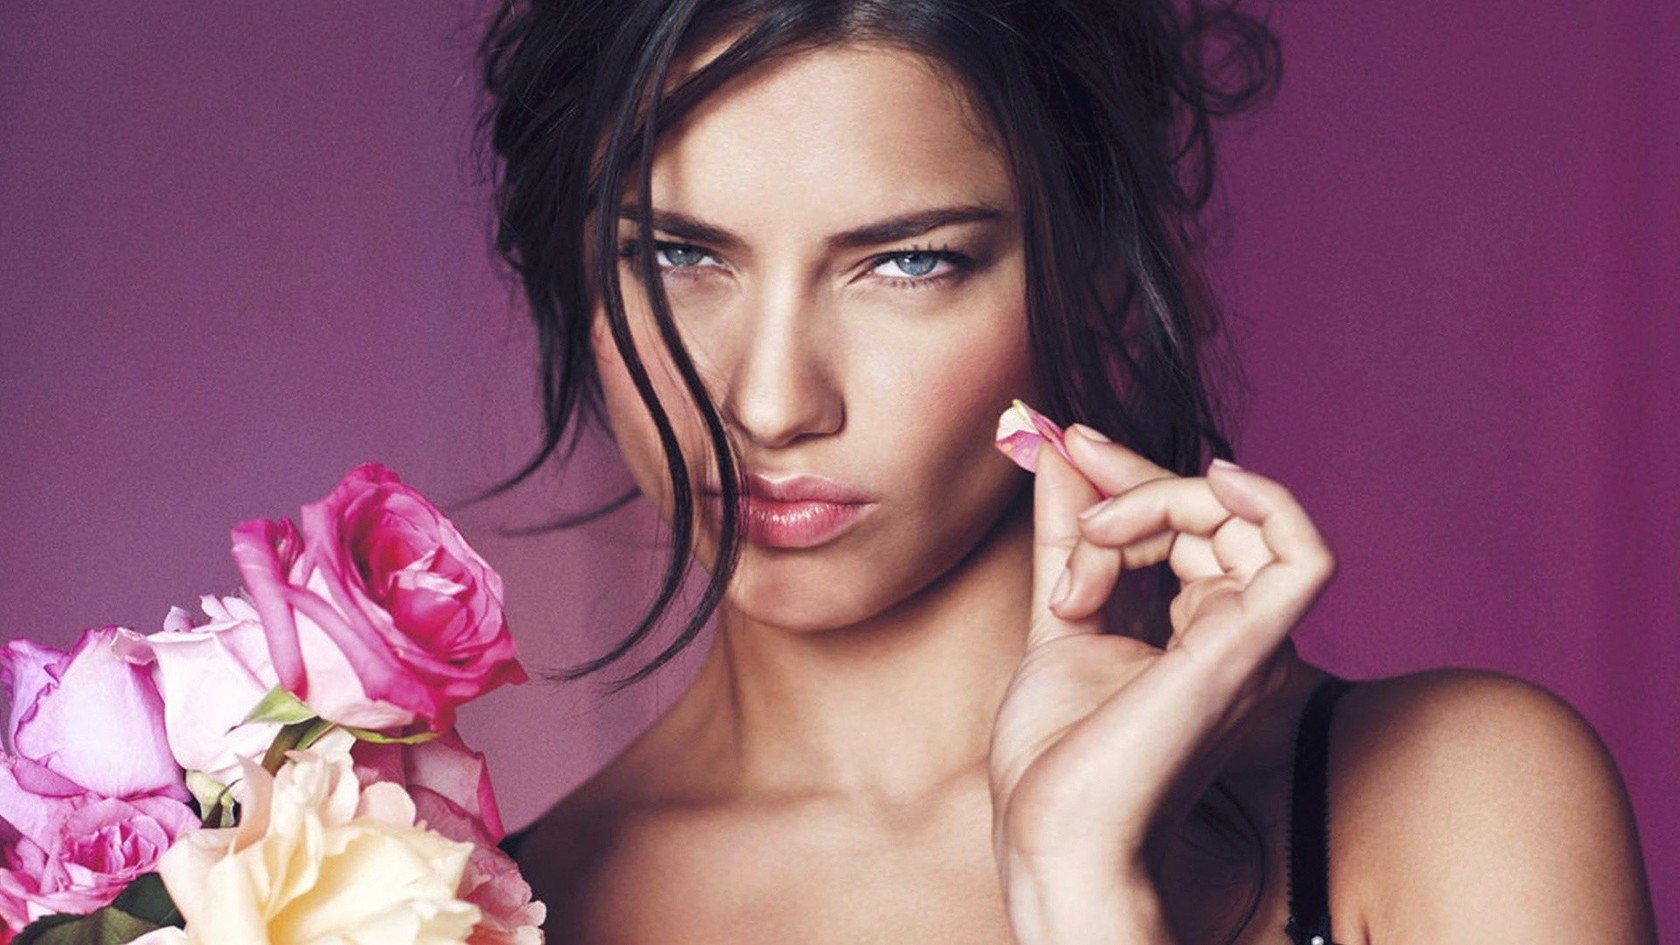 Adriana lima wallpaper 19826 1680x945 px hdwallsource adriana lima wallpaper 19826 voltagebd Images